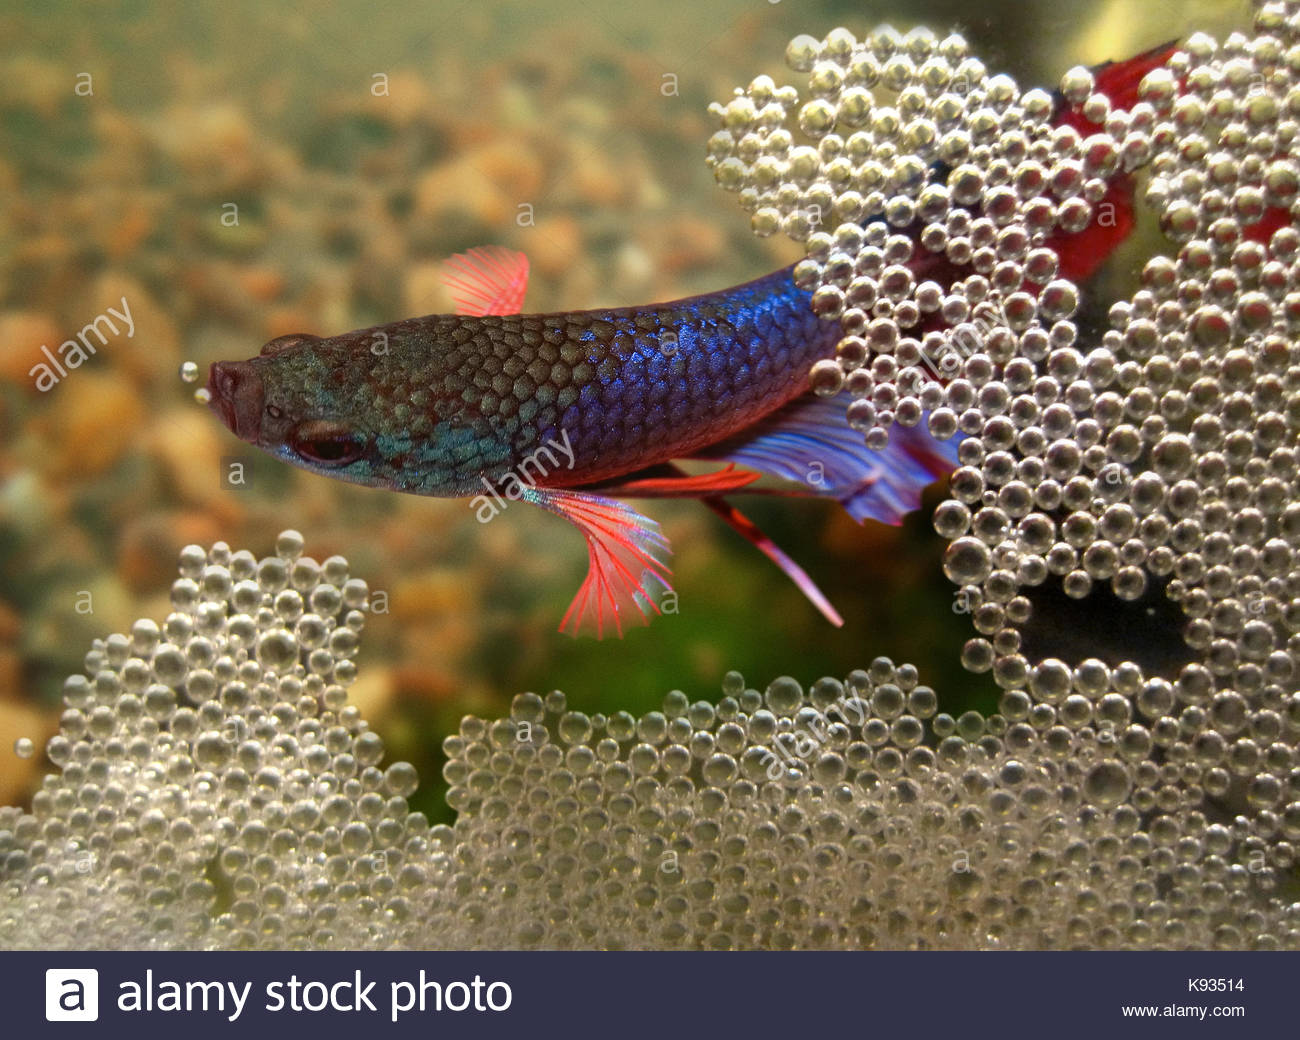 Siamese fighting fish, Betta splendens. Male building the bubble nest at the surface. The eggs float and stay mixed - Stock Image